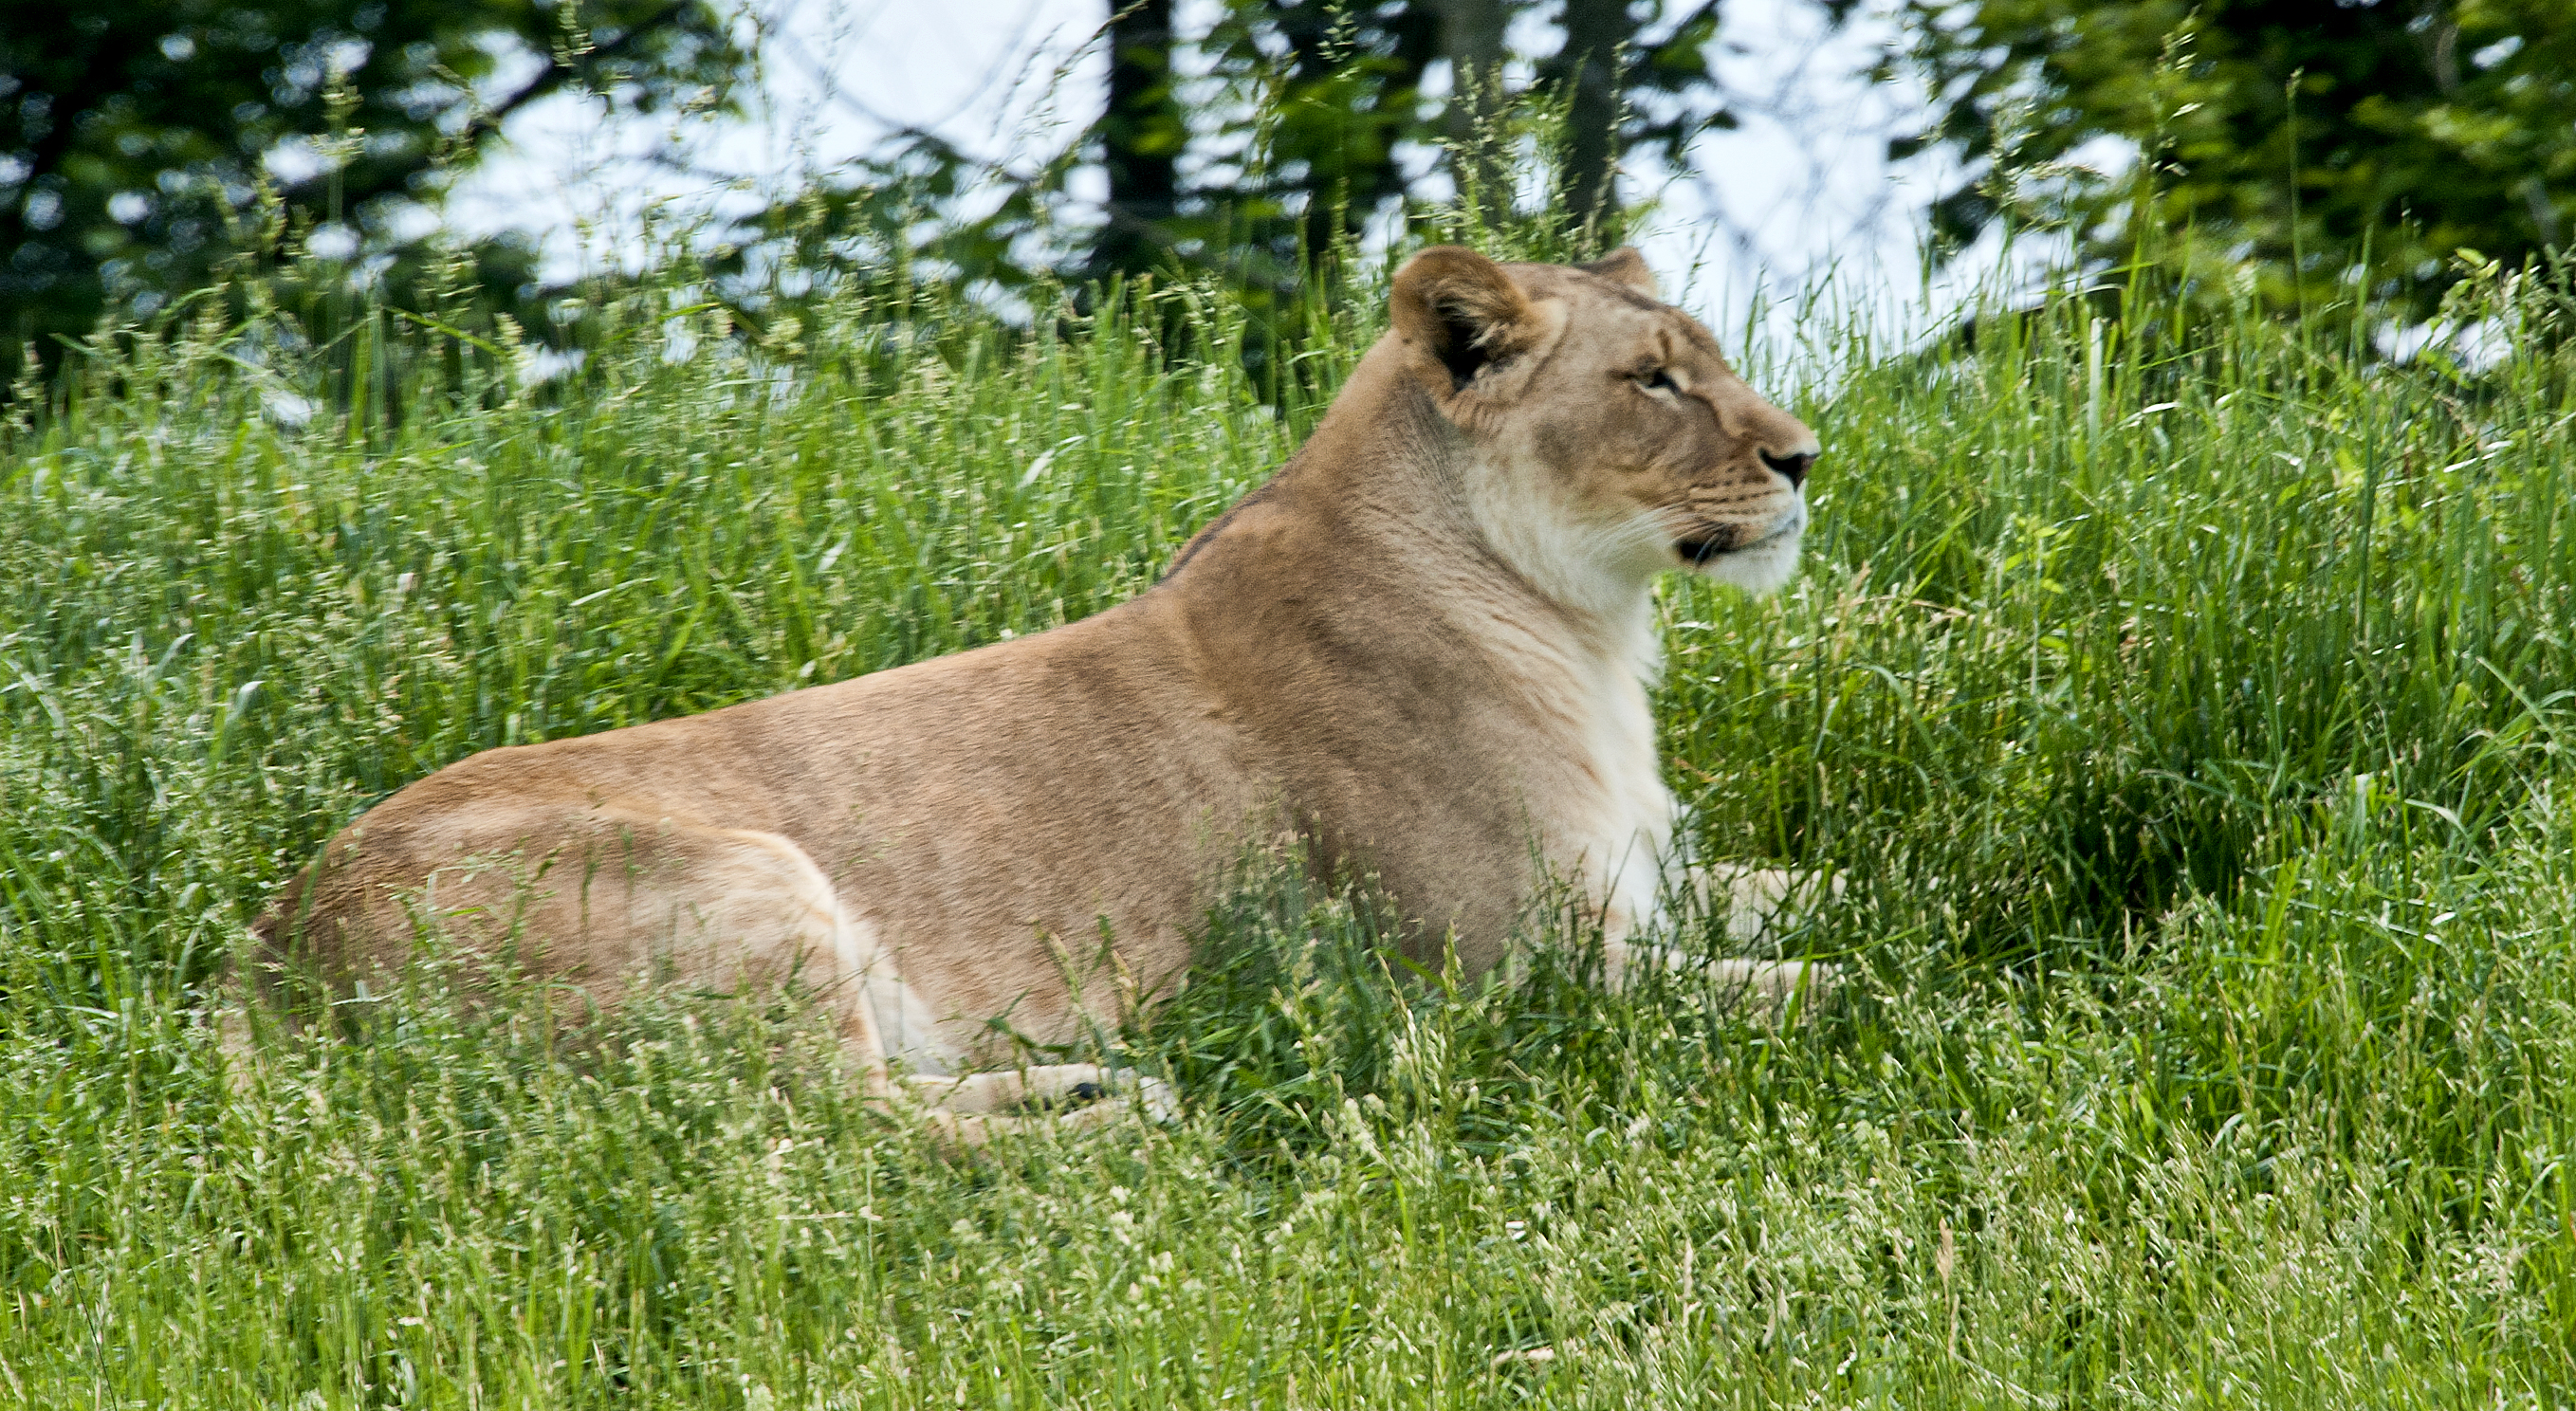 Image of Ina the lion from the Fort Wayne Children's Zoo.